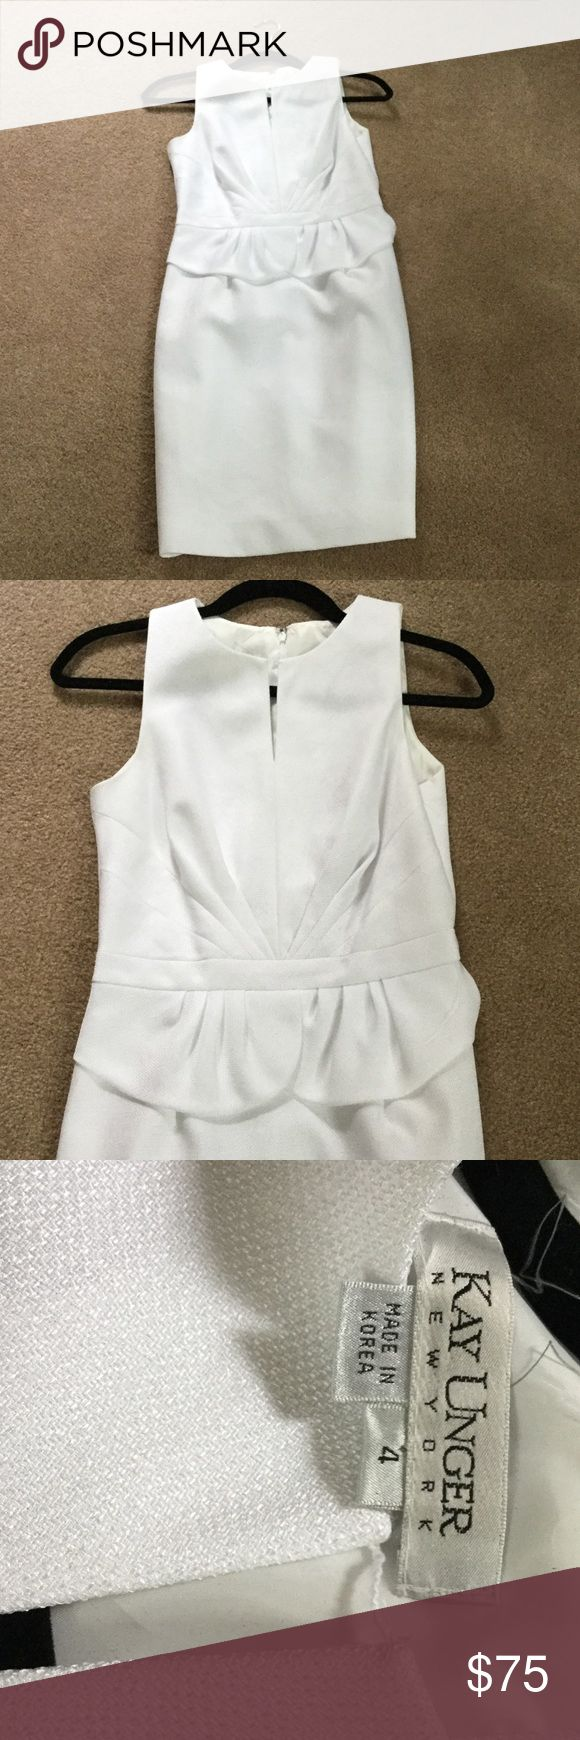 Kay Unger White Dress Comes just below the knee. Great condition. Worn a few times. Kay Unger Dresses Midi